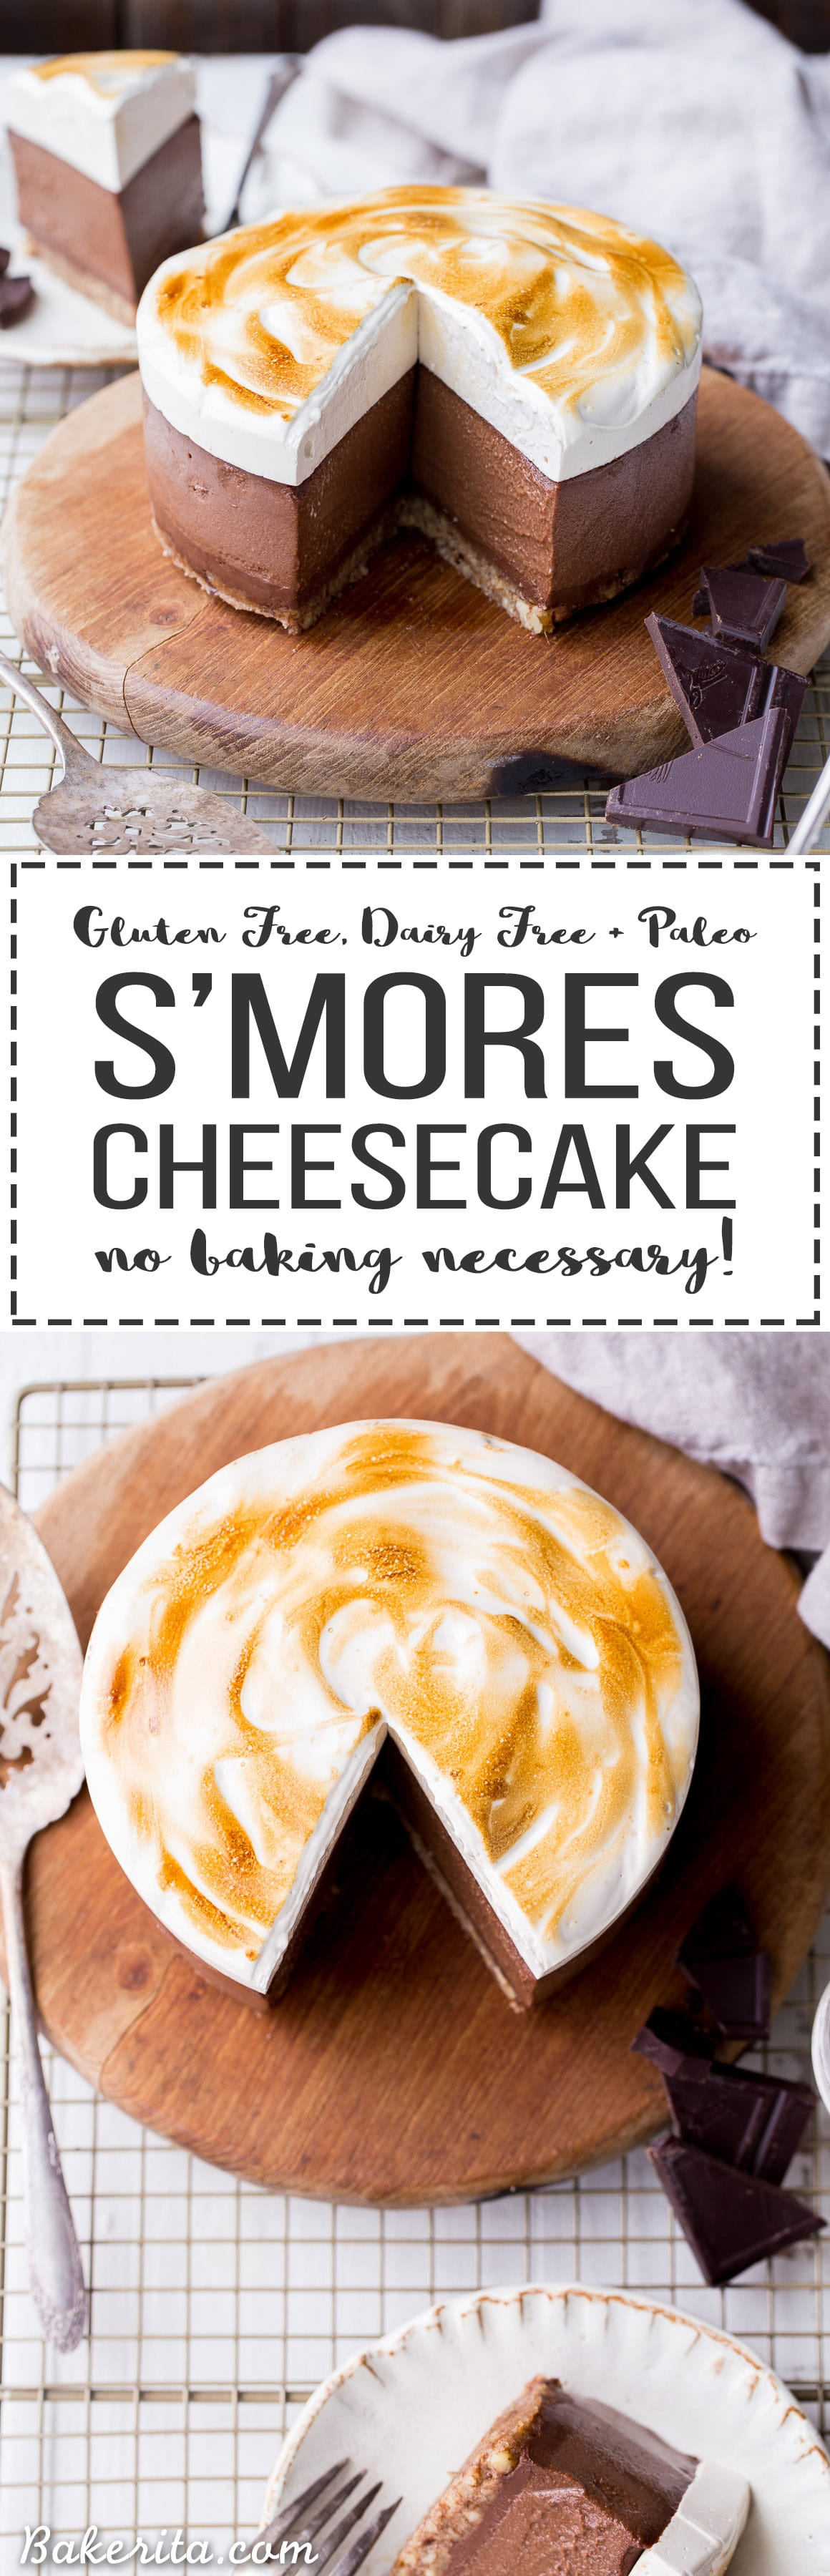 """This No Bake S'mores Cheesecake has a graham cracker flavored crust topped with chocolate ganache, rich chocolate """"cheesecake"""" made with soaked cashews, and a layer of homemade toasted marshmallow on top! You'd never guess this decadent dessert is gluten-free, dairy-free, and Paleo."""